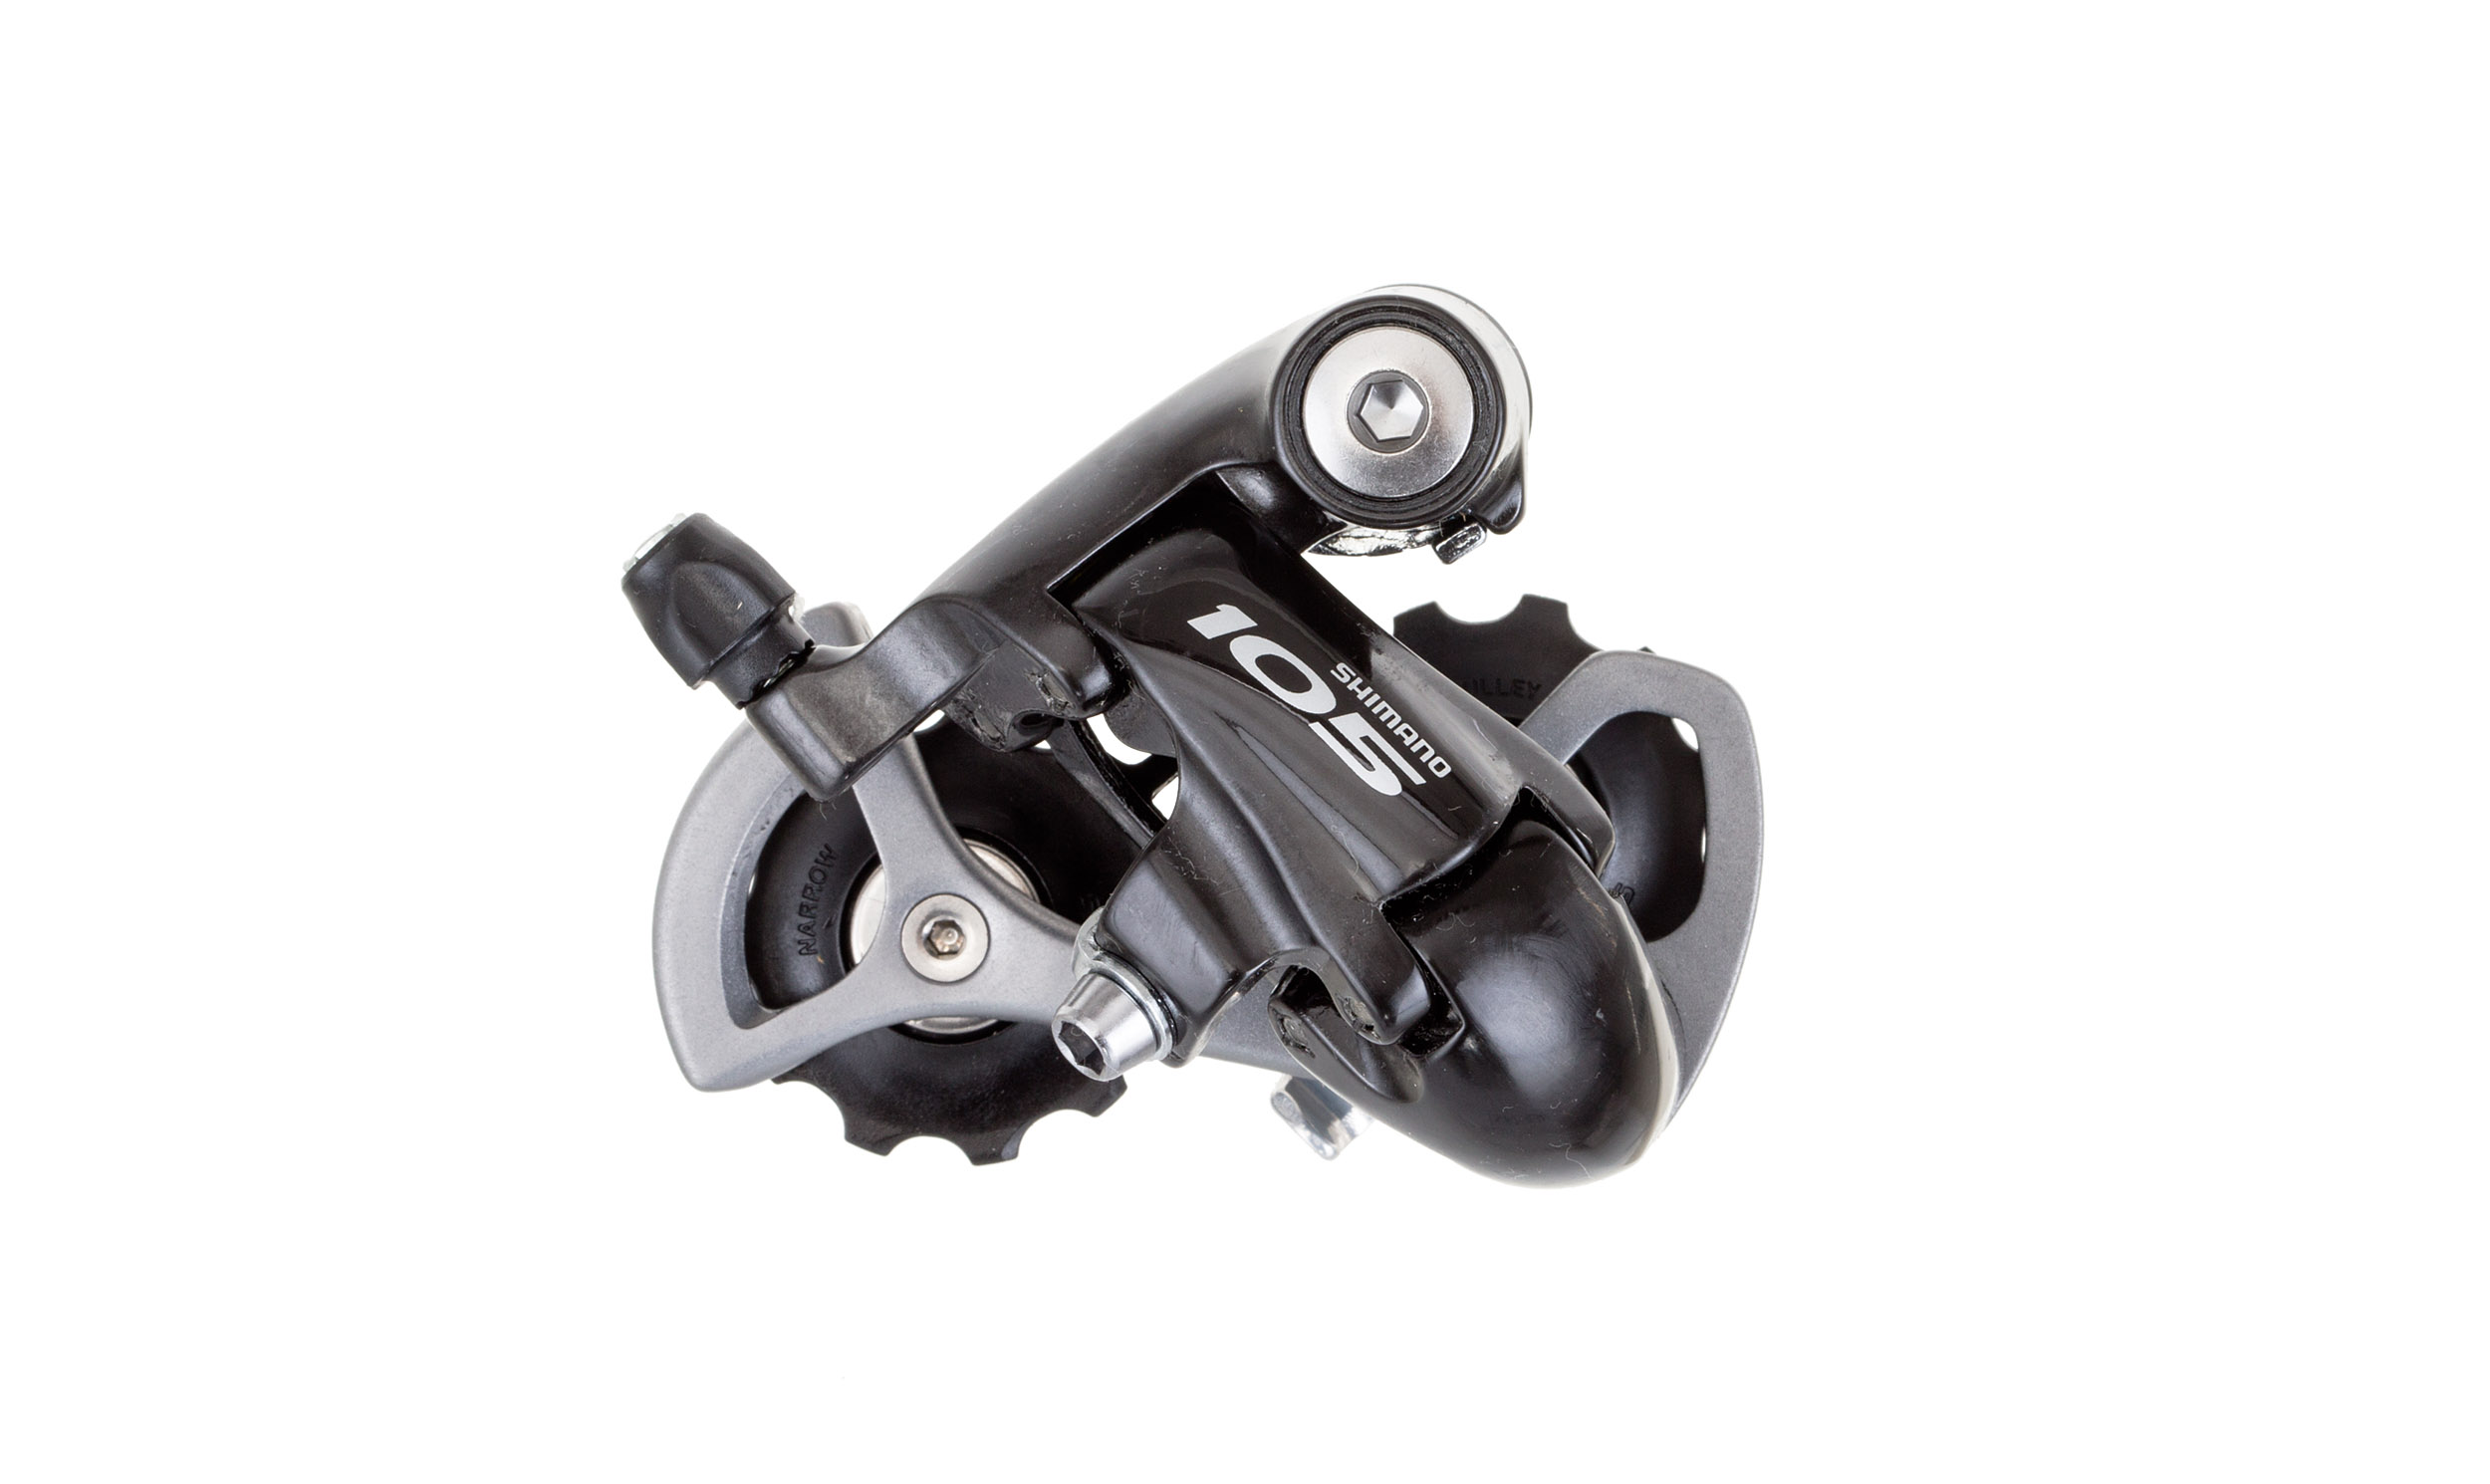 Shimano -  SHIMANO SHIMANO , RD-5600-L-SS, 105, 10-SPEEED DIRECT ATTACHMENT, BLACK